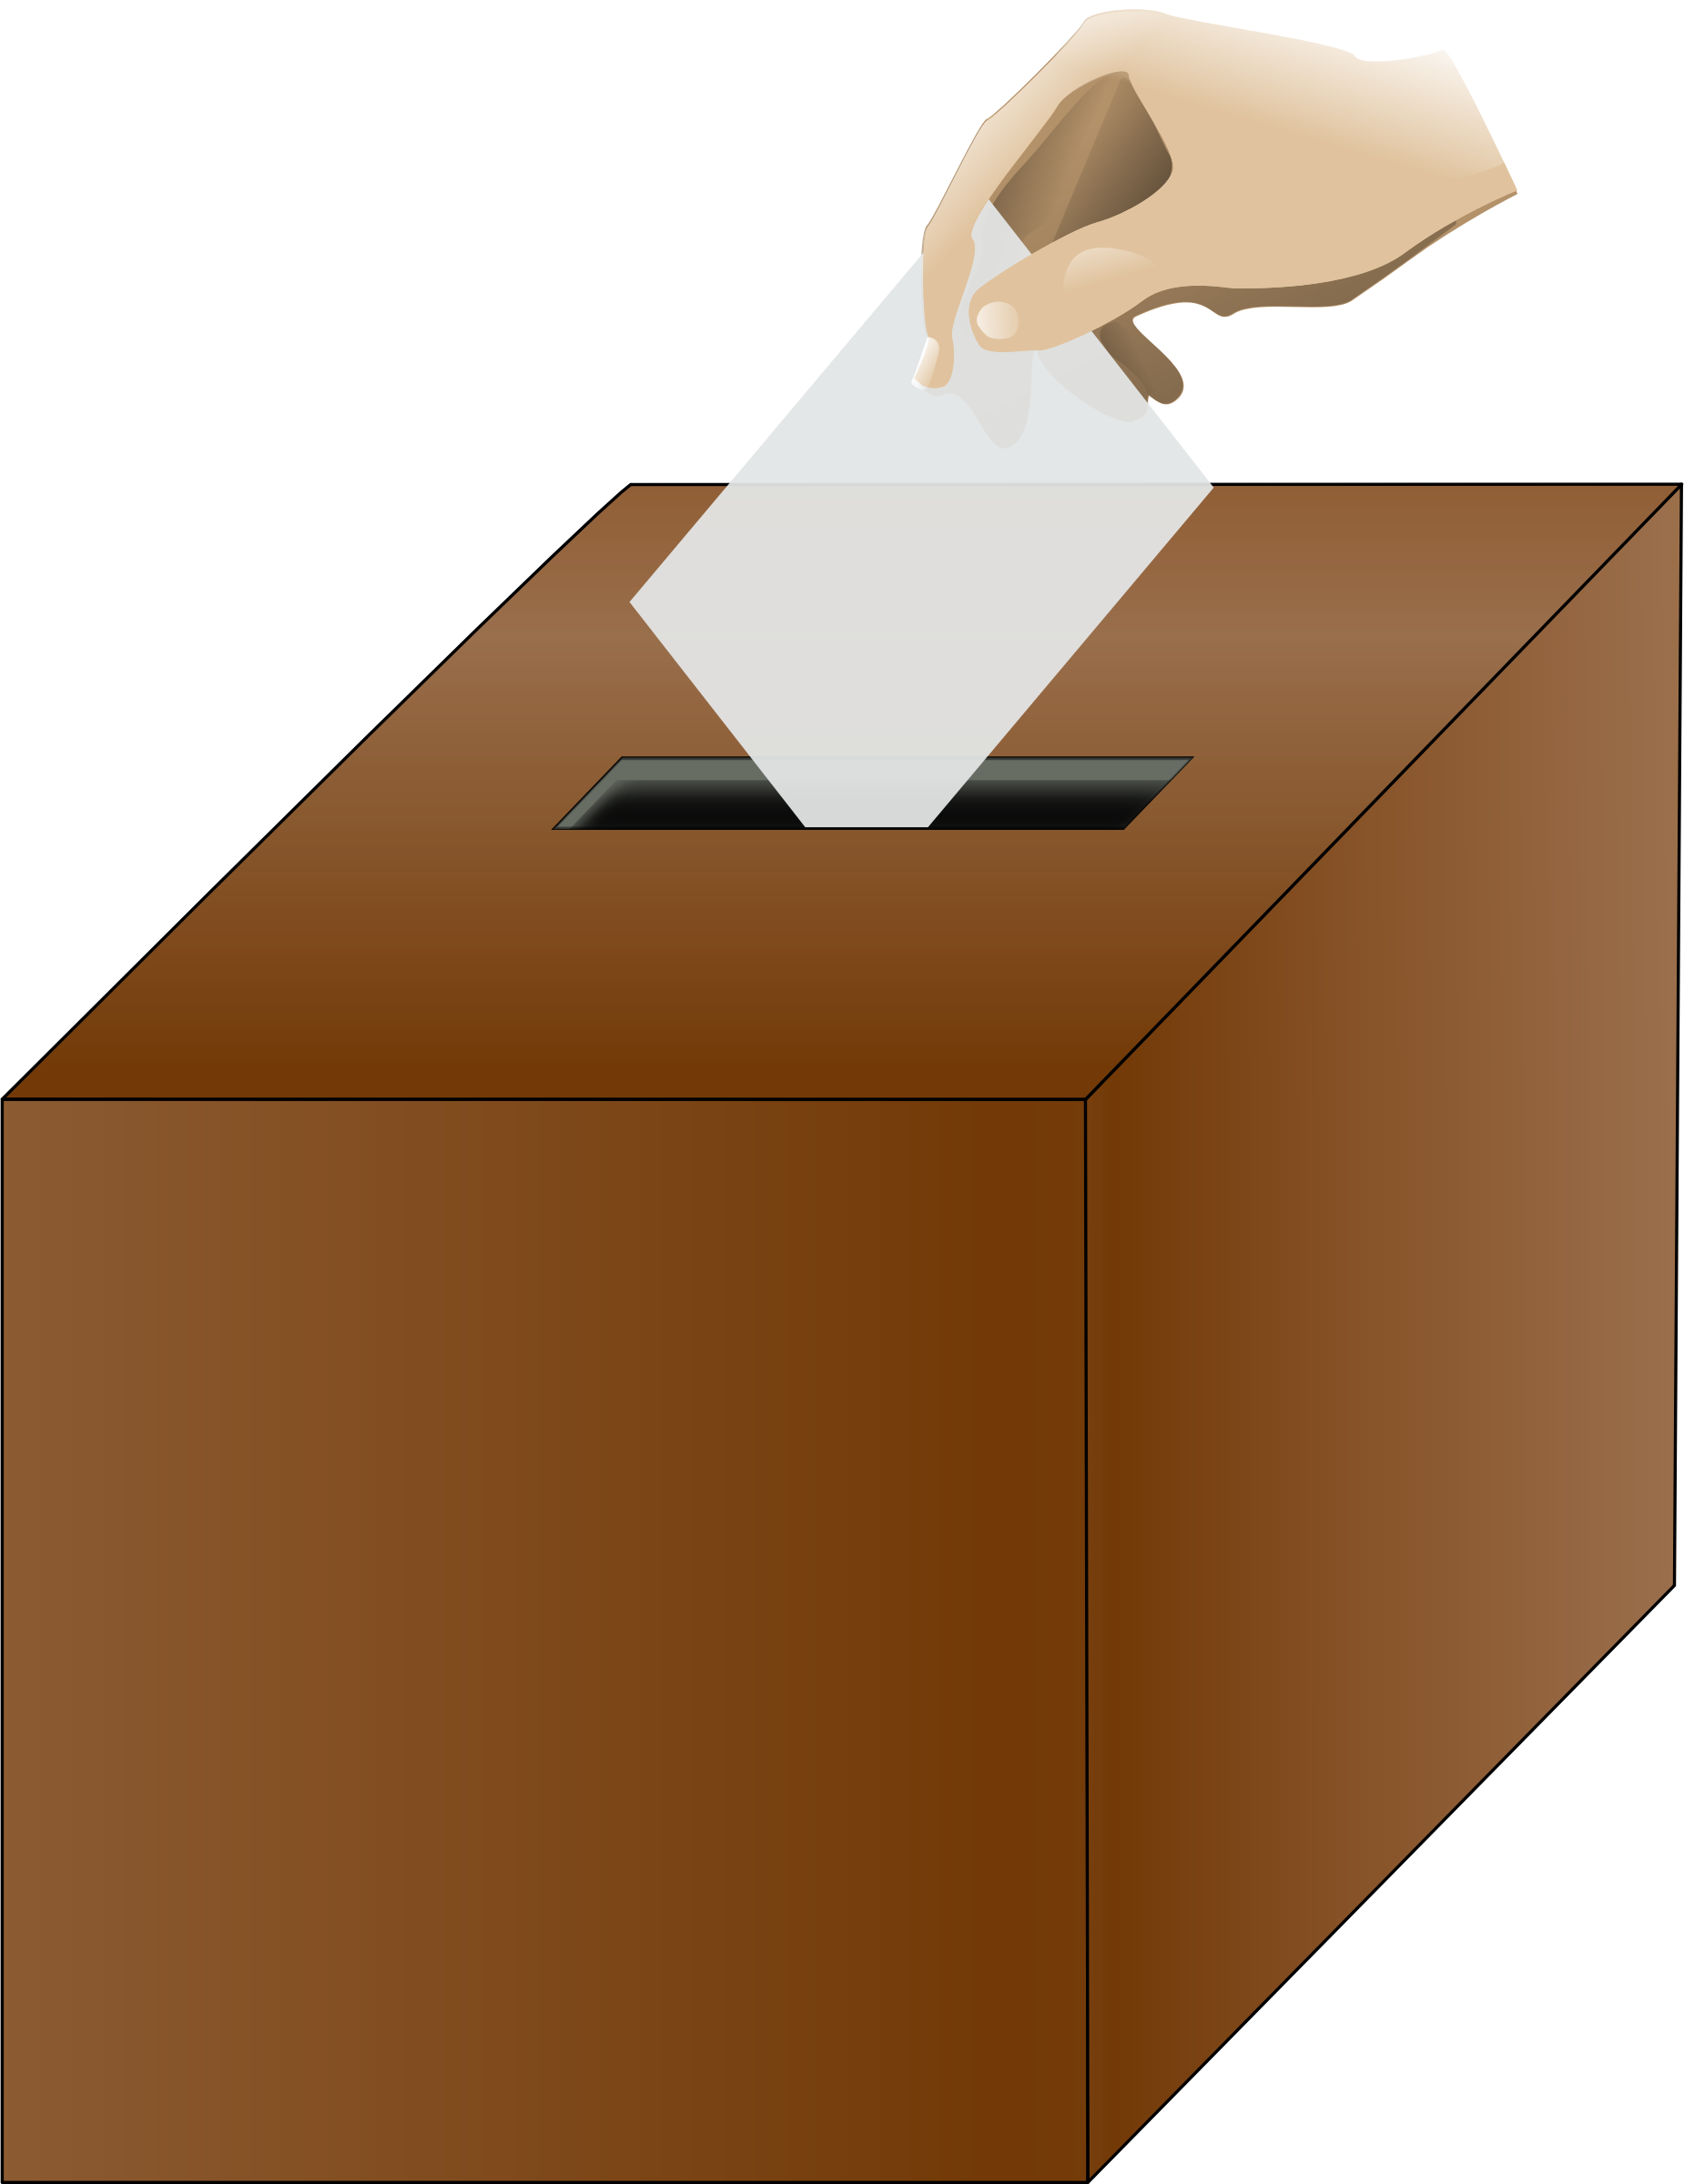 Voting clipart voting poll. Don t you wish